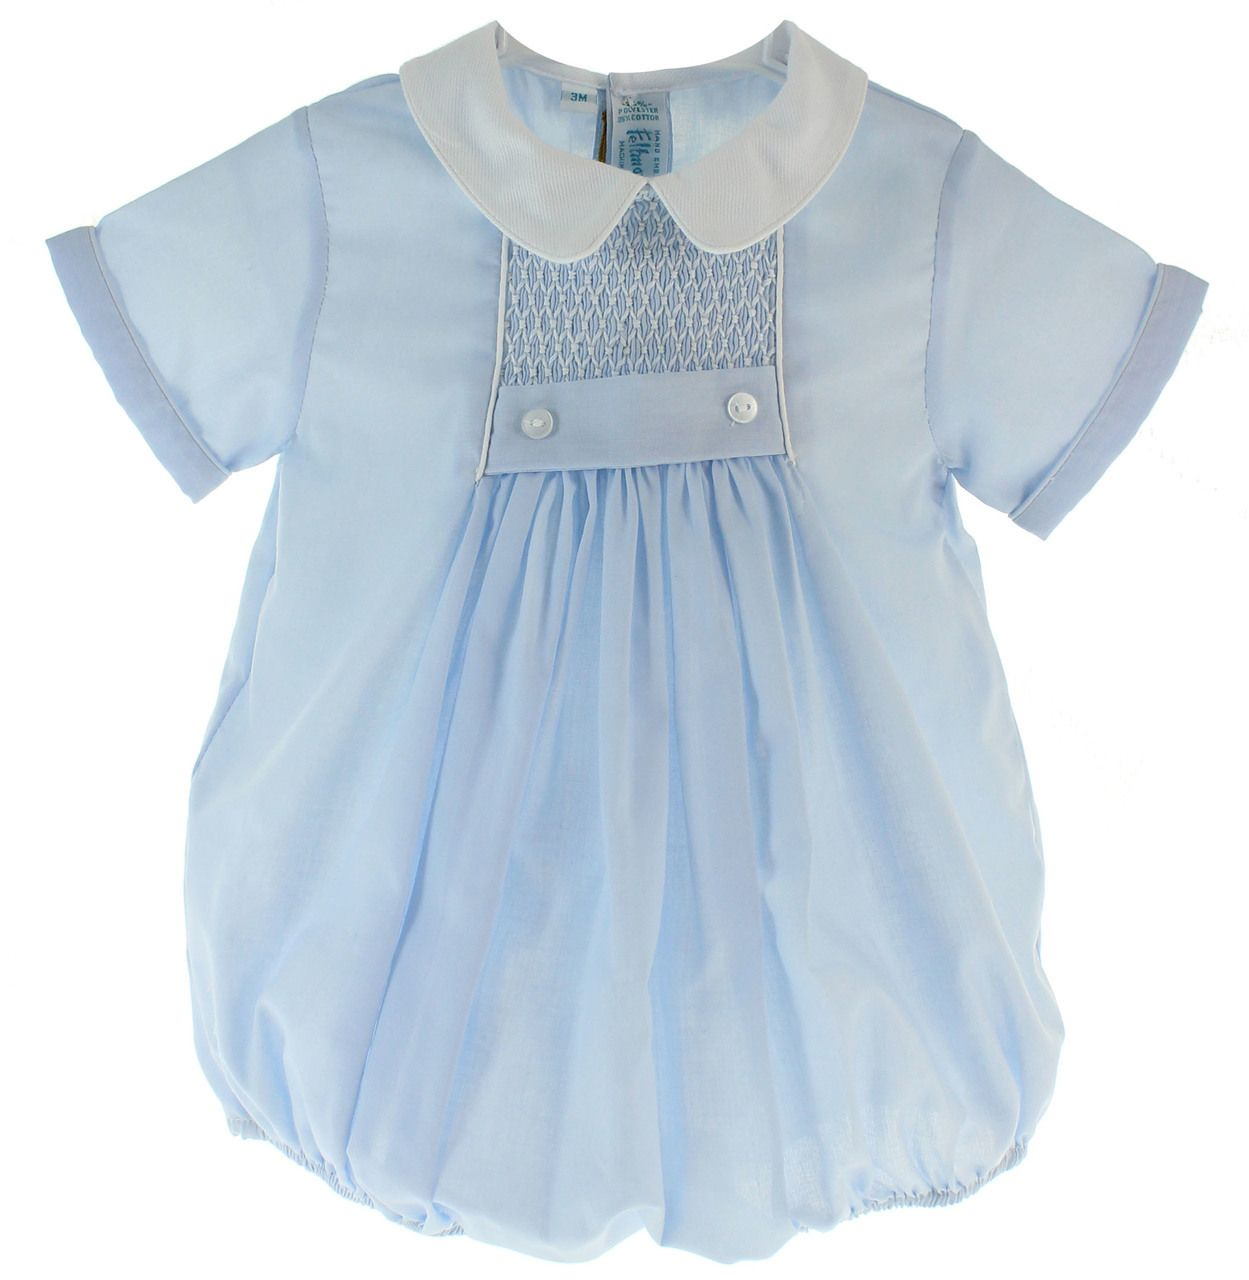 411e4da19 Hiccups Childrens Boutique - Infant Boys Blue Smocked Bubble Outfit |  Feltman Brothers, ...